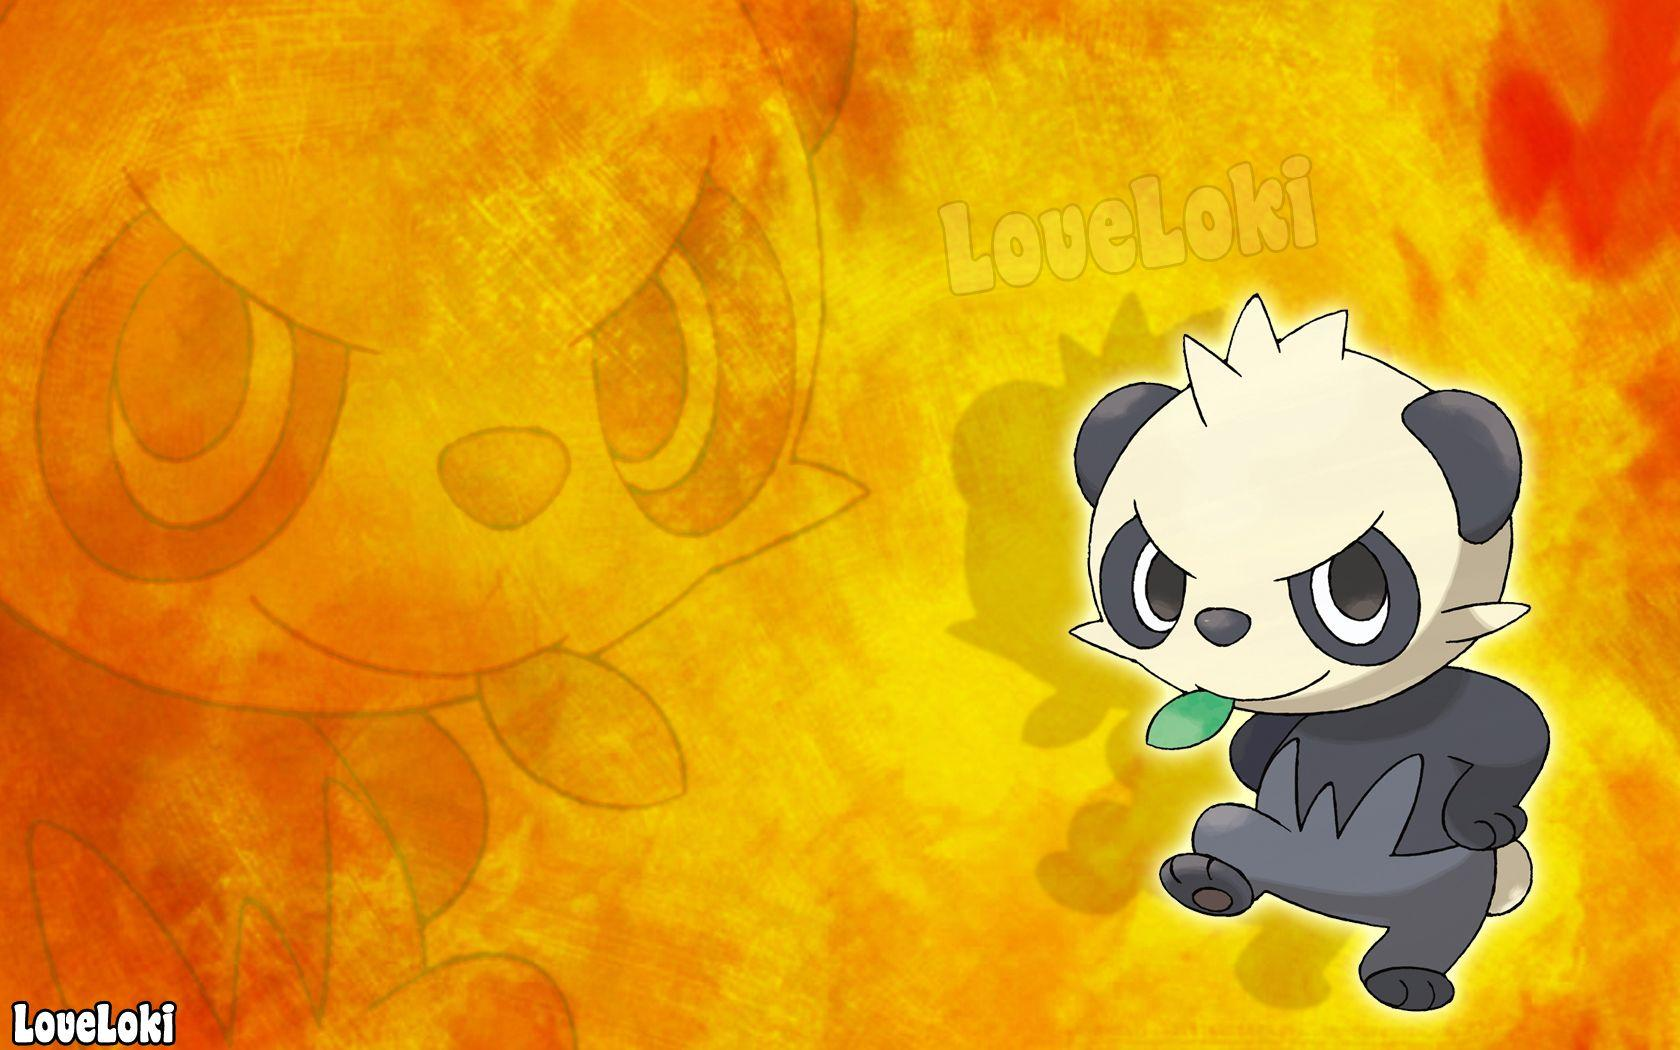 Images of Pancham Wallpaper - #SpaceHero